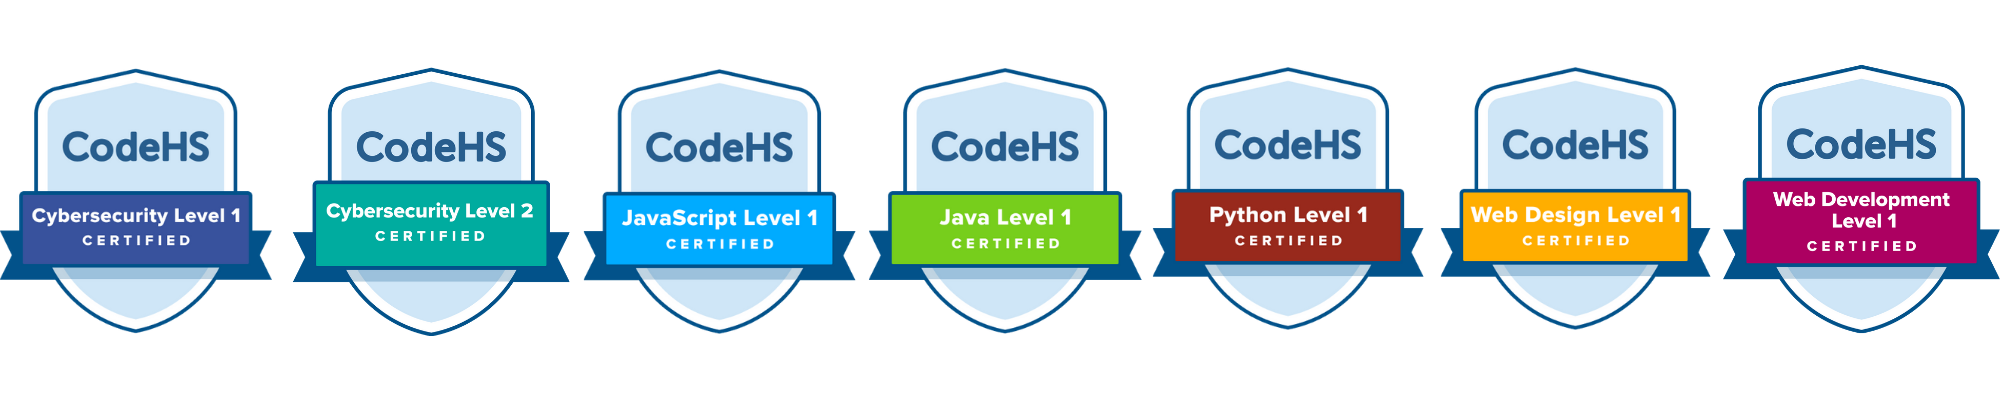 Image showing all available CodeHS Certifications badges